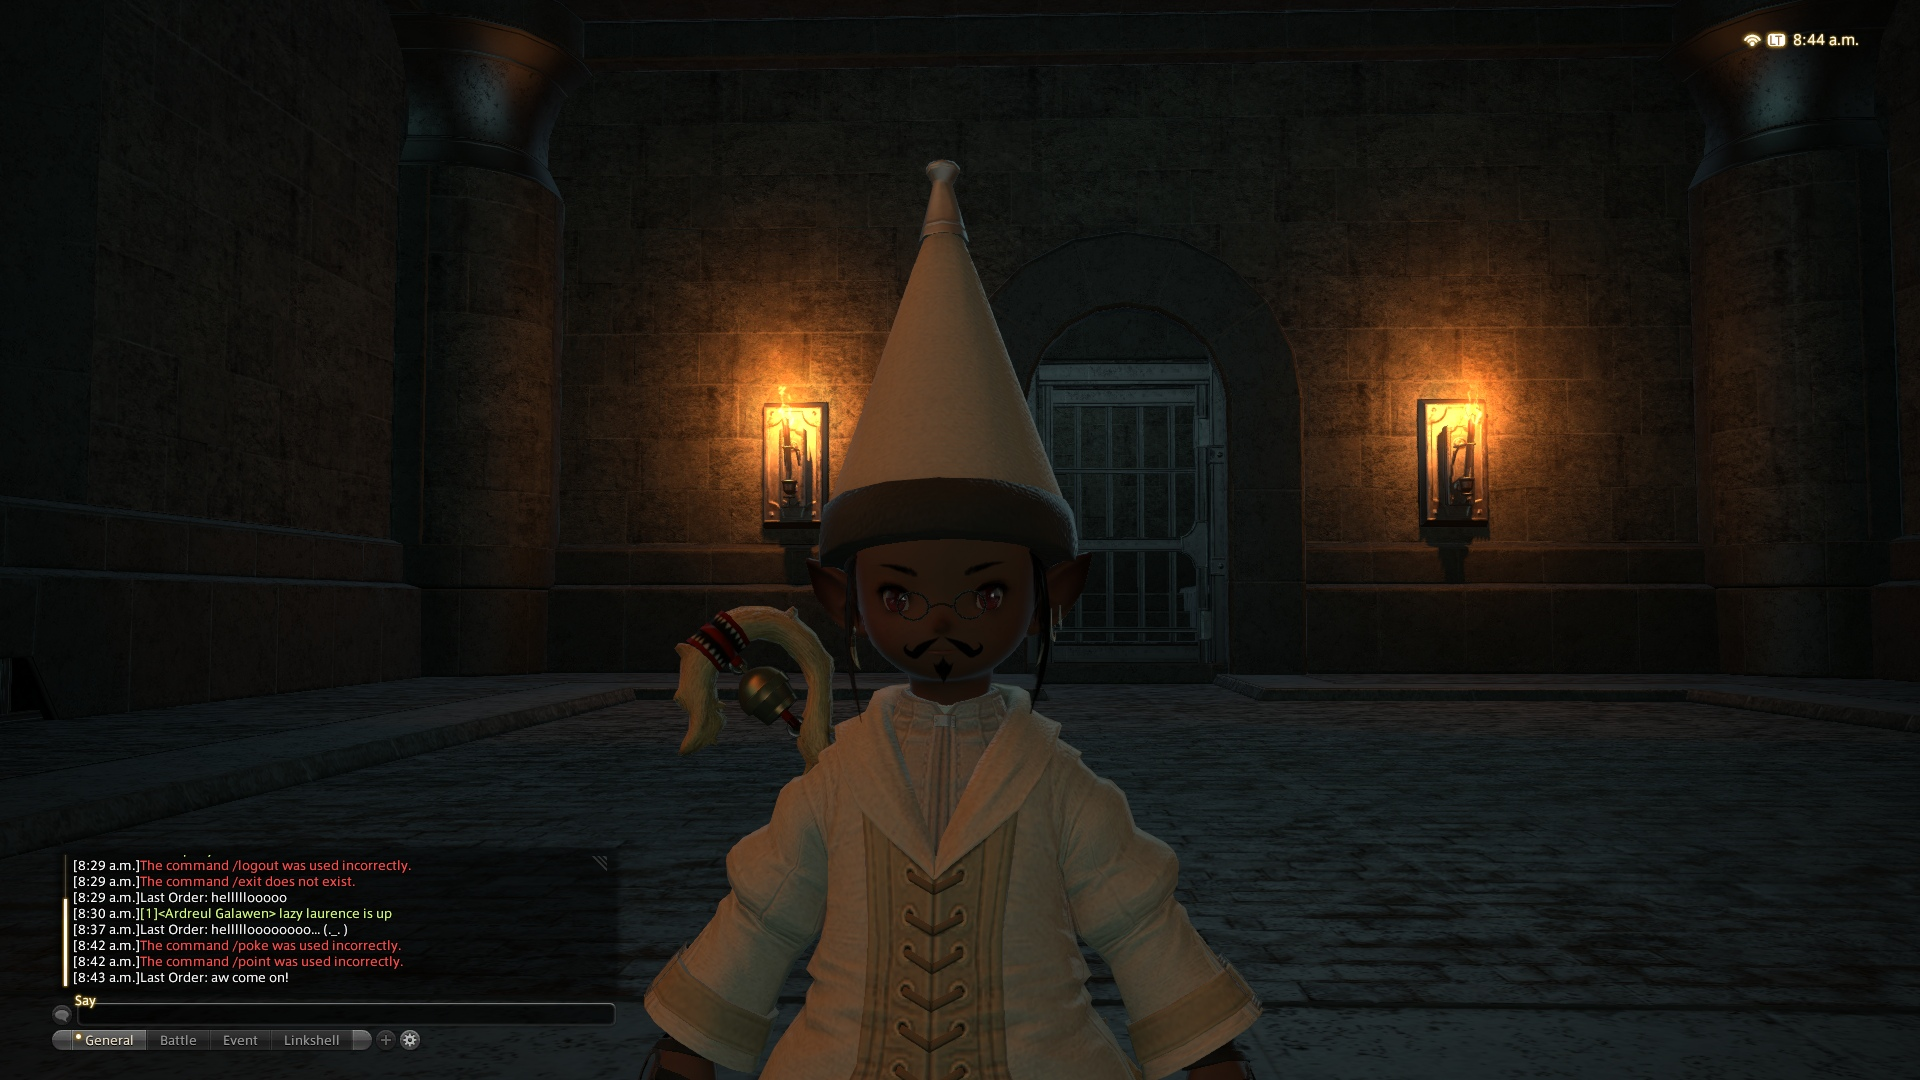 zoner ffxiv that with name more dumb chose route wish safe kinda order last still picked kick thing head popped started withdraw come time done something original took thought didnt care about fact mordion stay gaol doesnt change they initially changing pimpalot lasted while your right hella